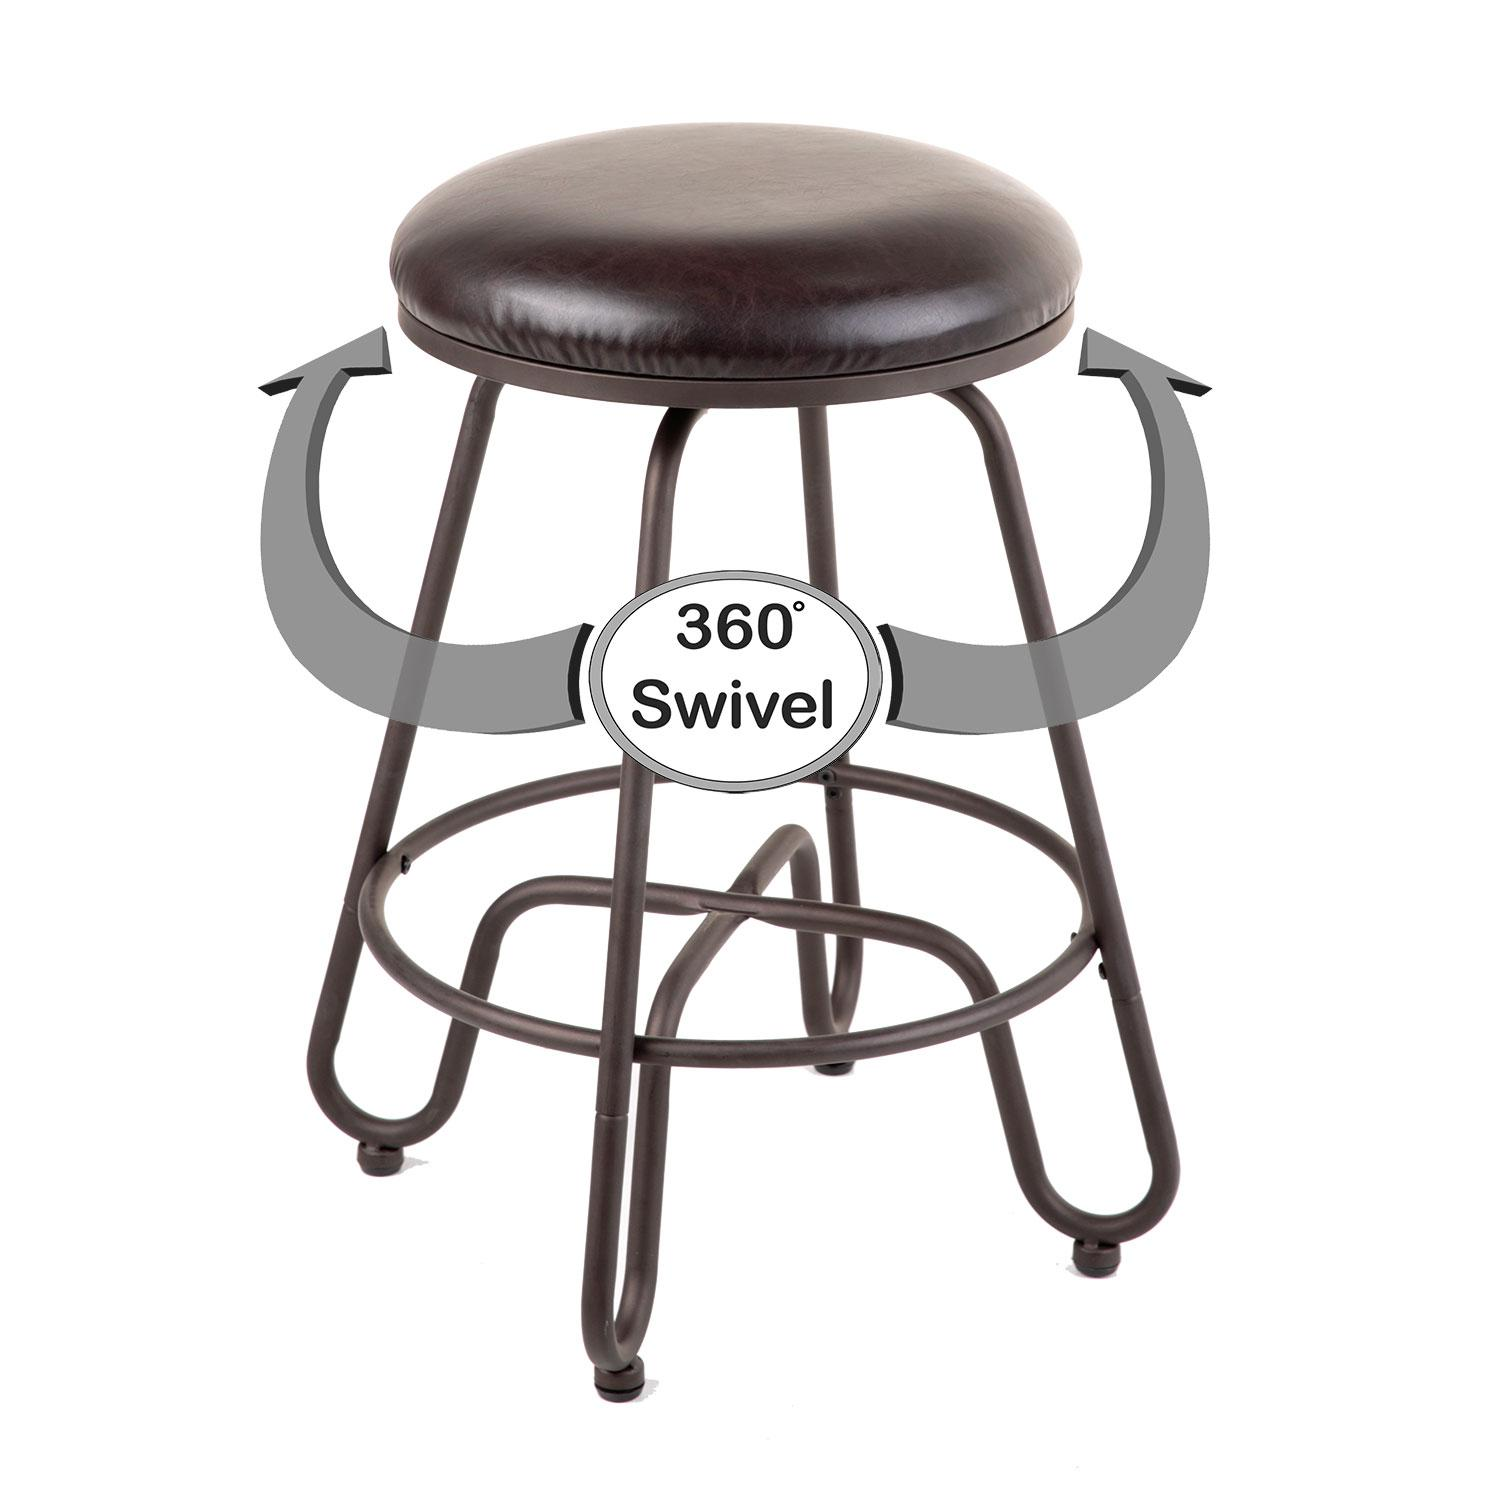 charming swivel seat bar stool in brown with leather seat by cymax bar stools for home furniture ideas